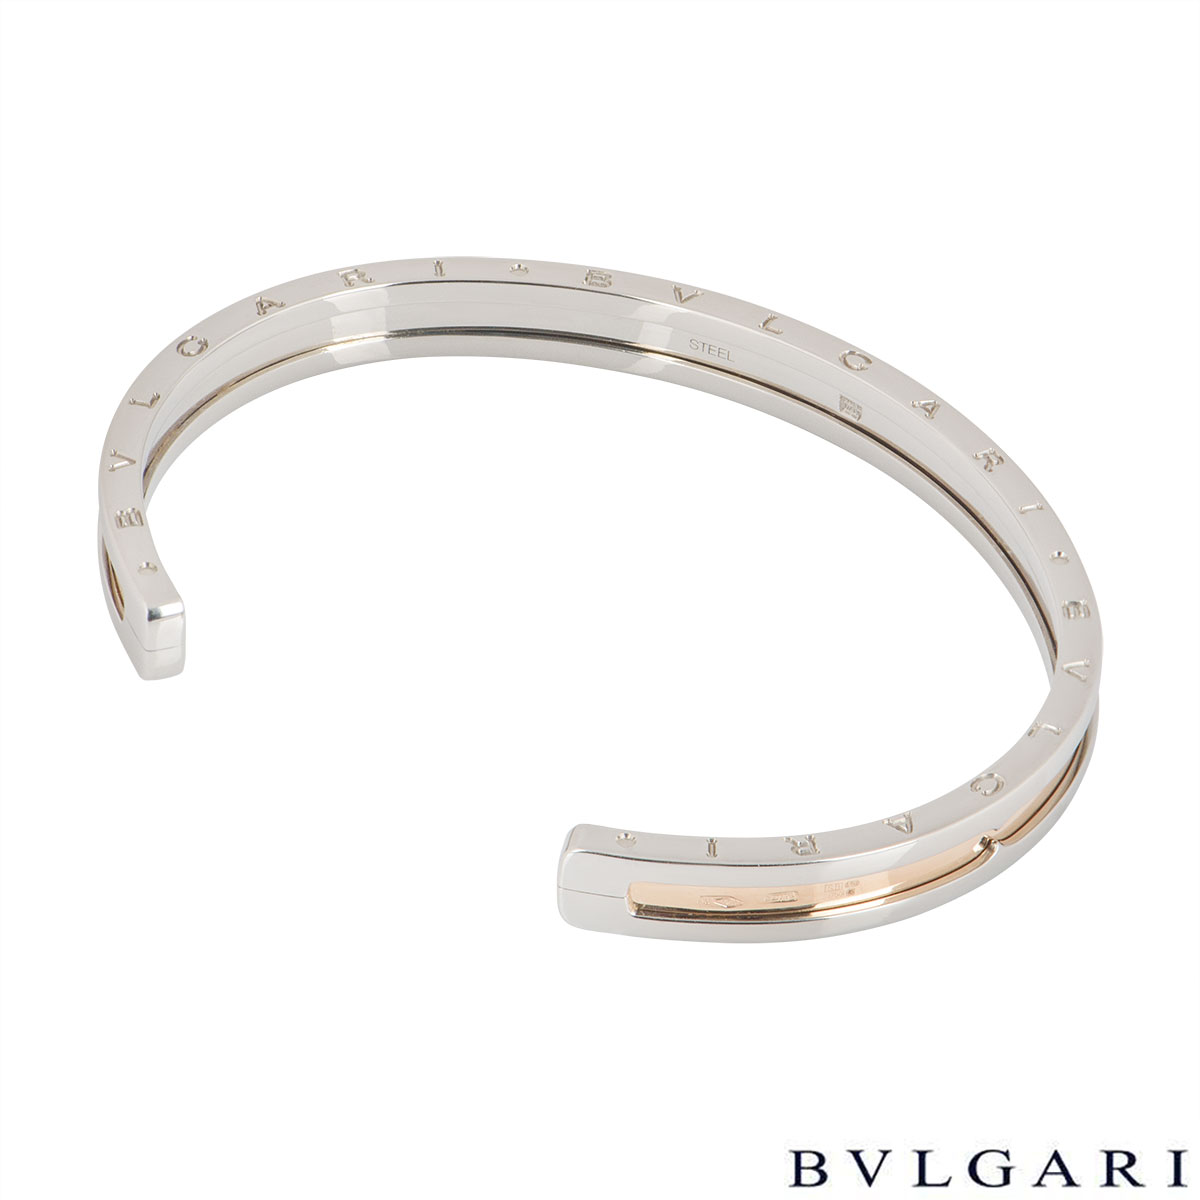 Bvlgari Steel & Yellow Gold B.Zero1 Bracelet 345575